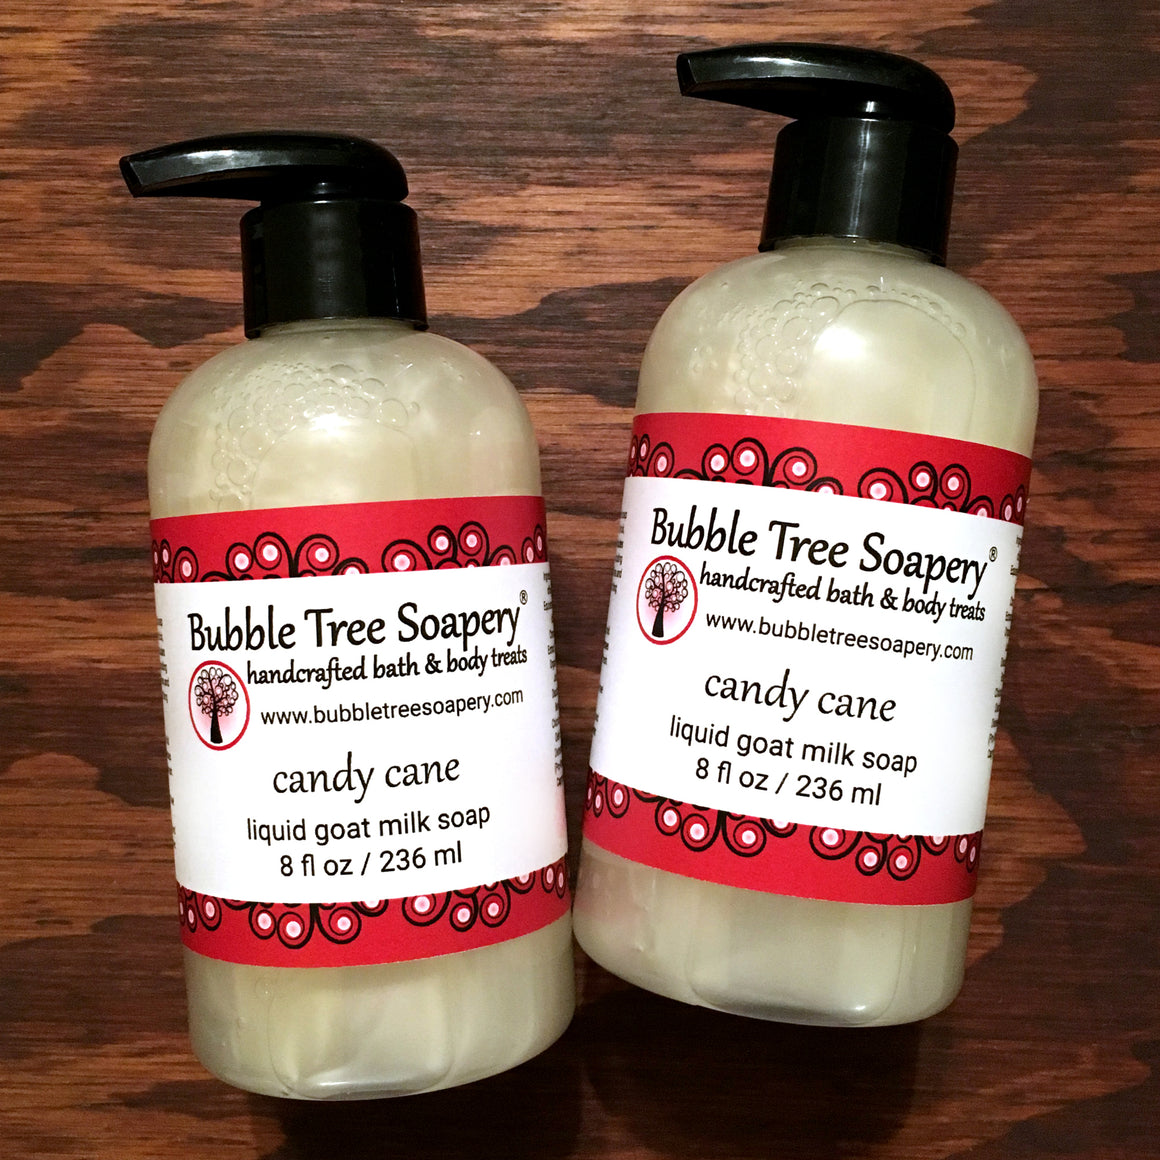 Candy Cane Liquid Goat Milk Soap - Bubble Tree Soapery